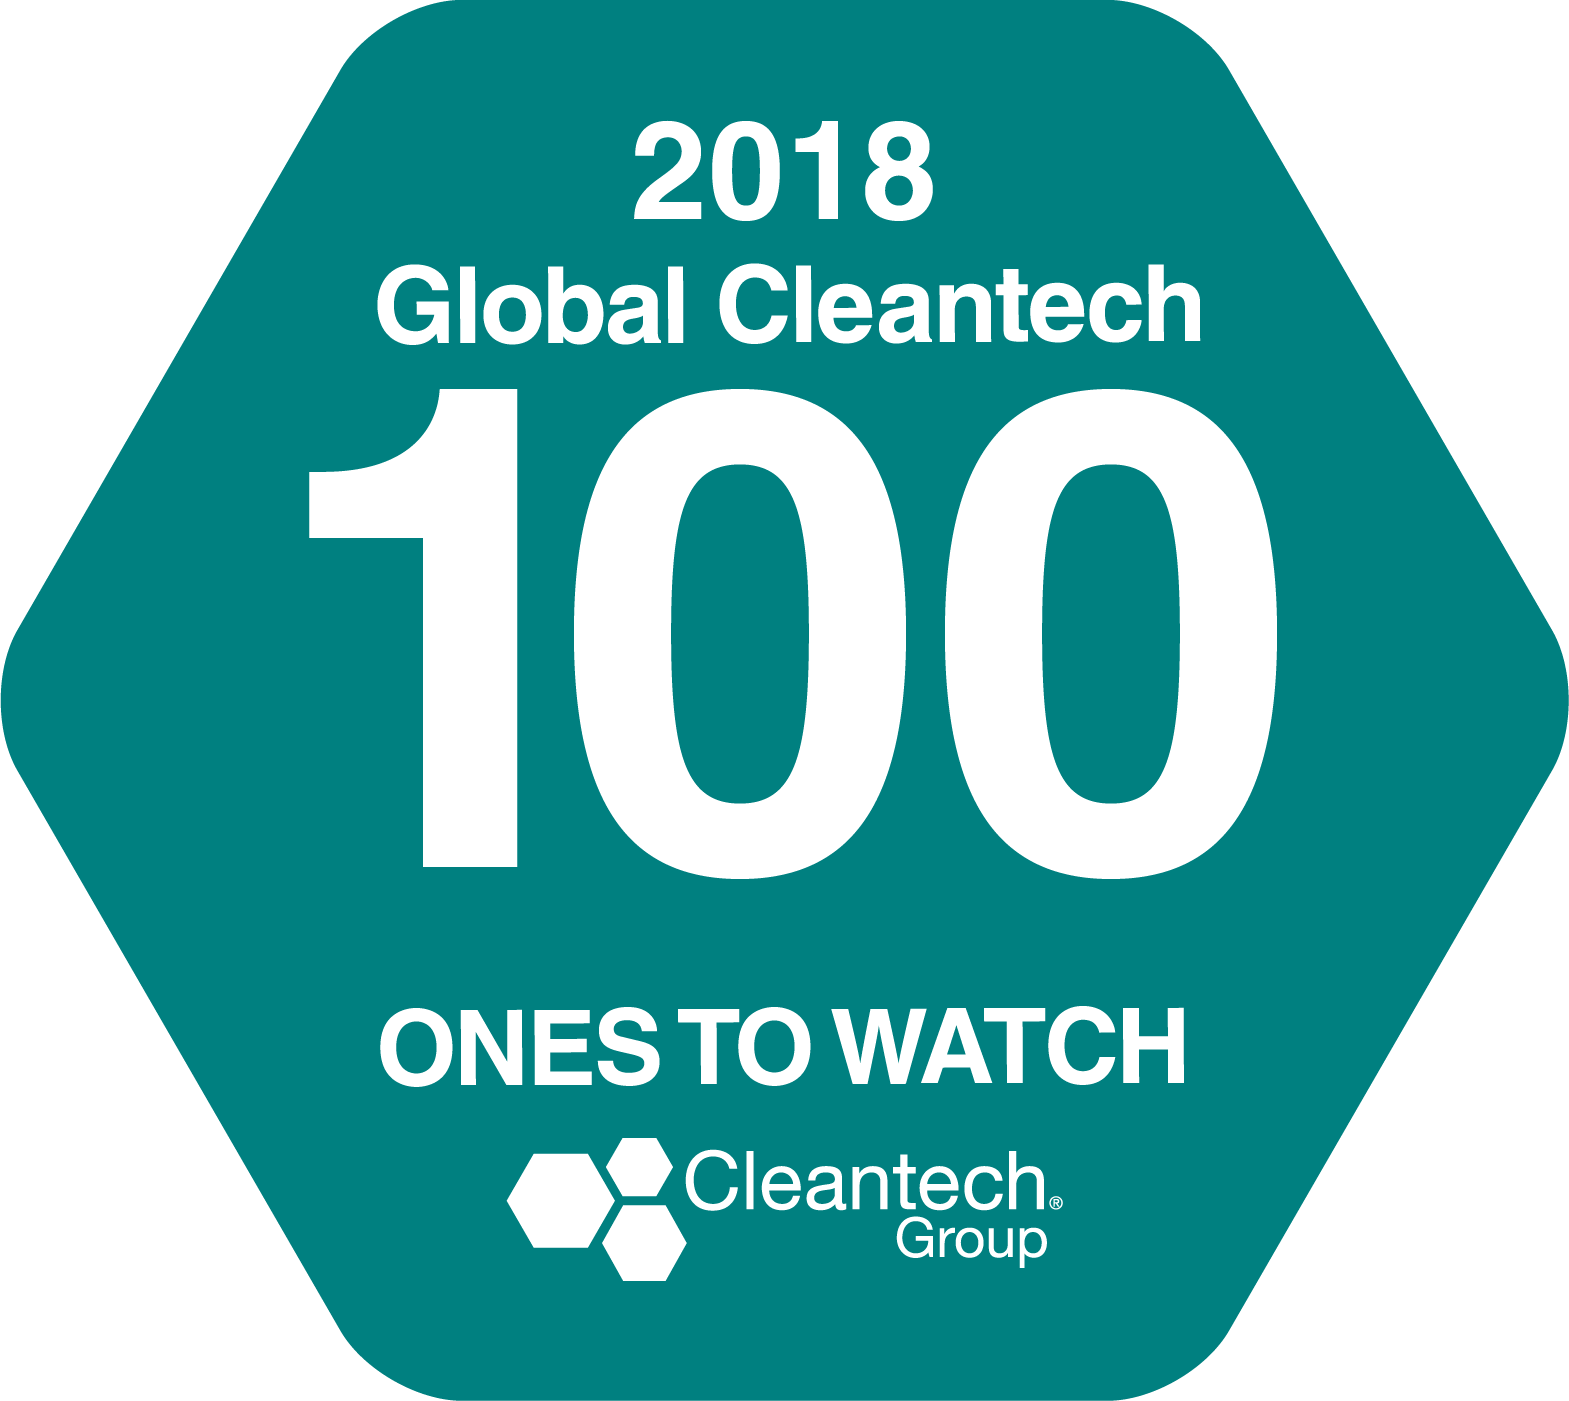 OnestoWatchEBadge2018